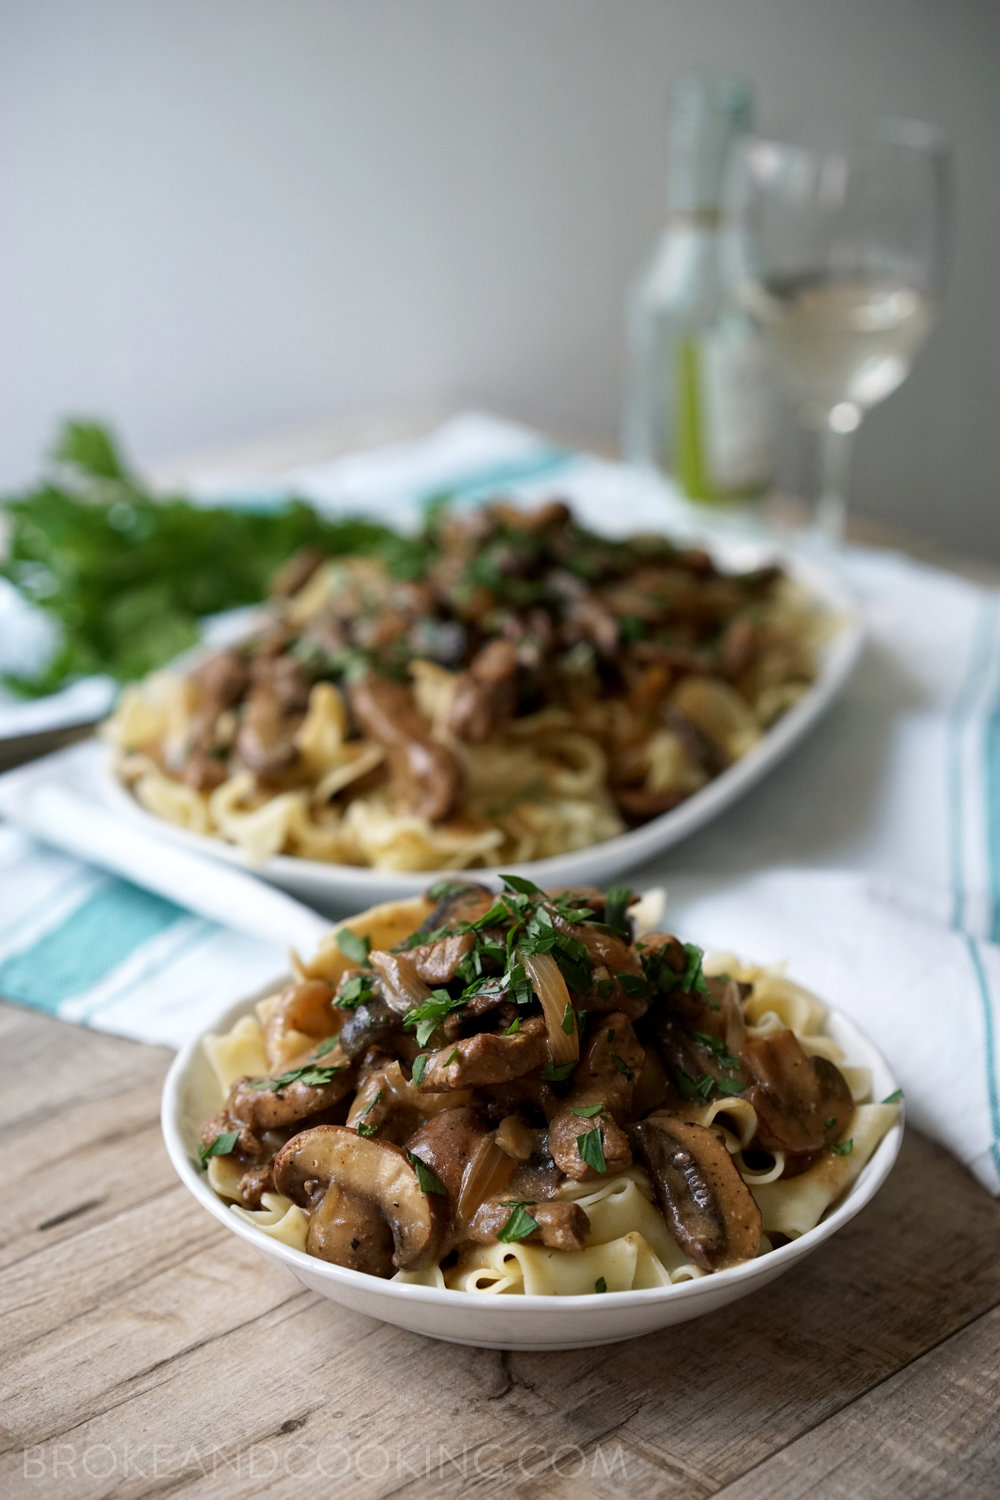 Skinny Beef Stroganoff Recipe by Broke and Cooking - www.brokeandcooking.com